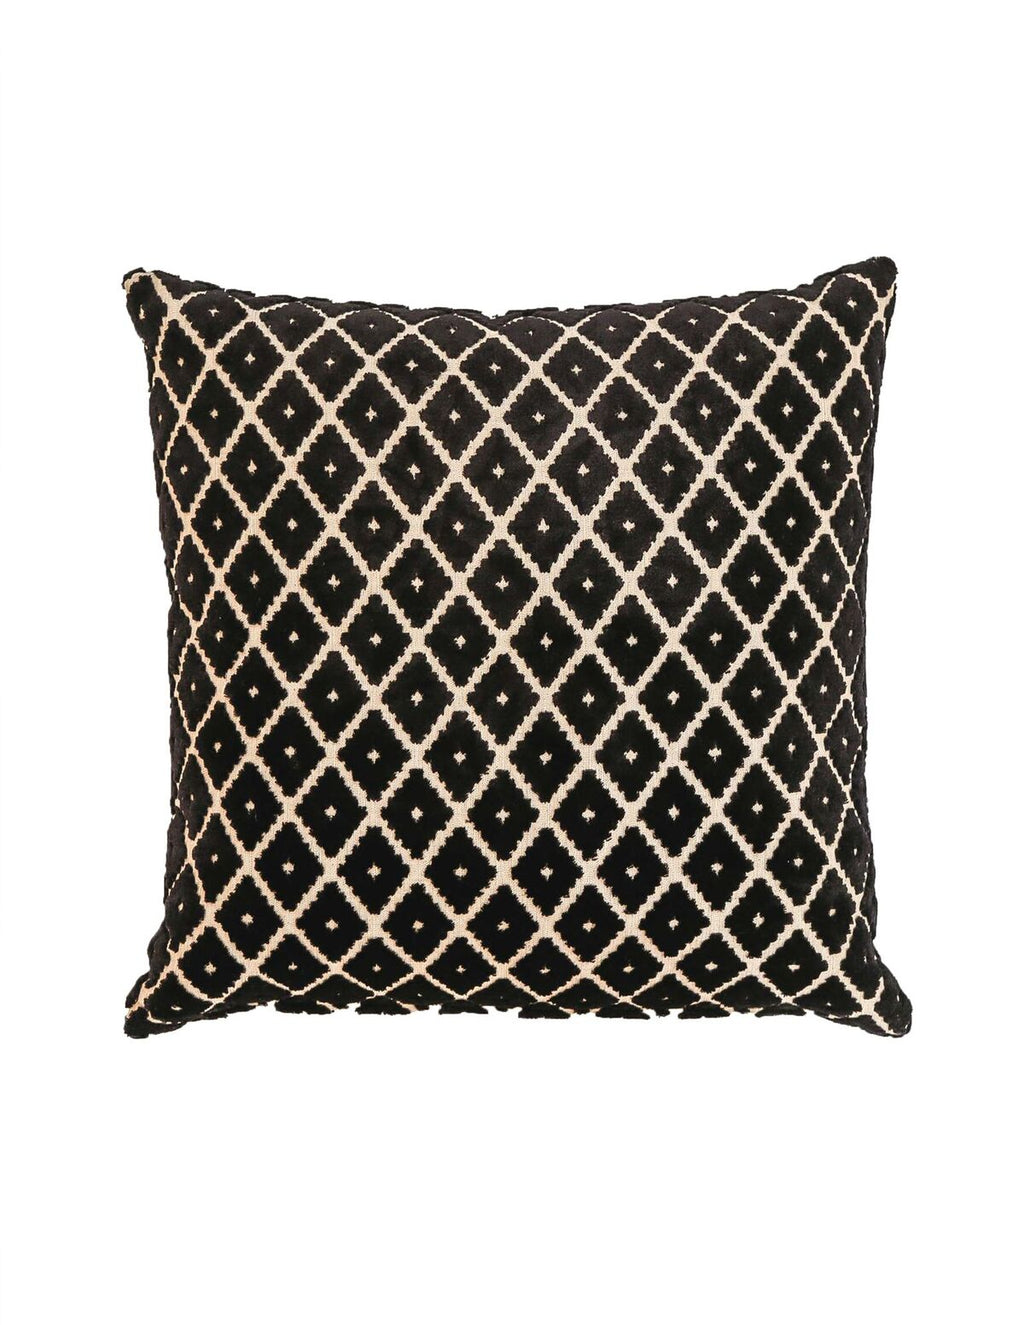 Signature Cushion Black and White Diamond